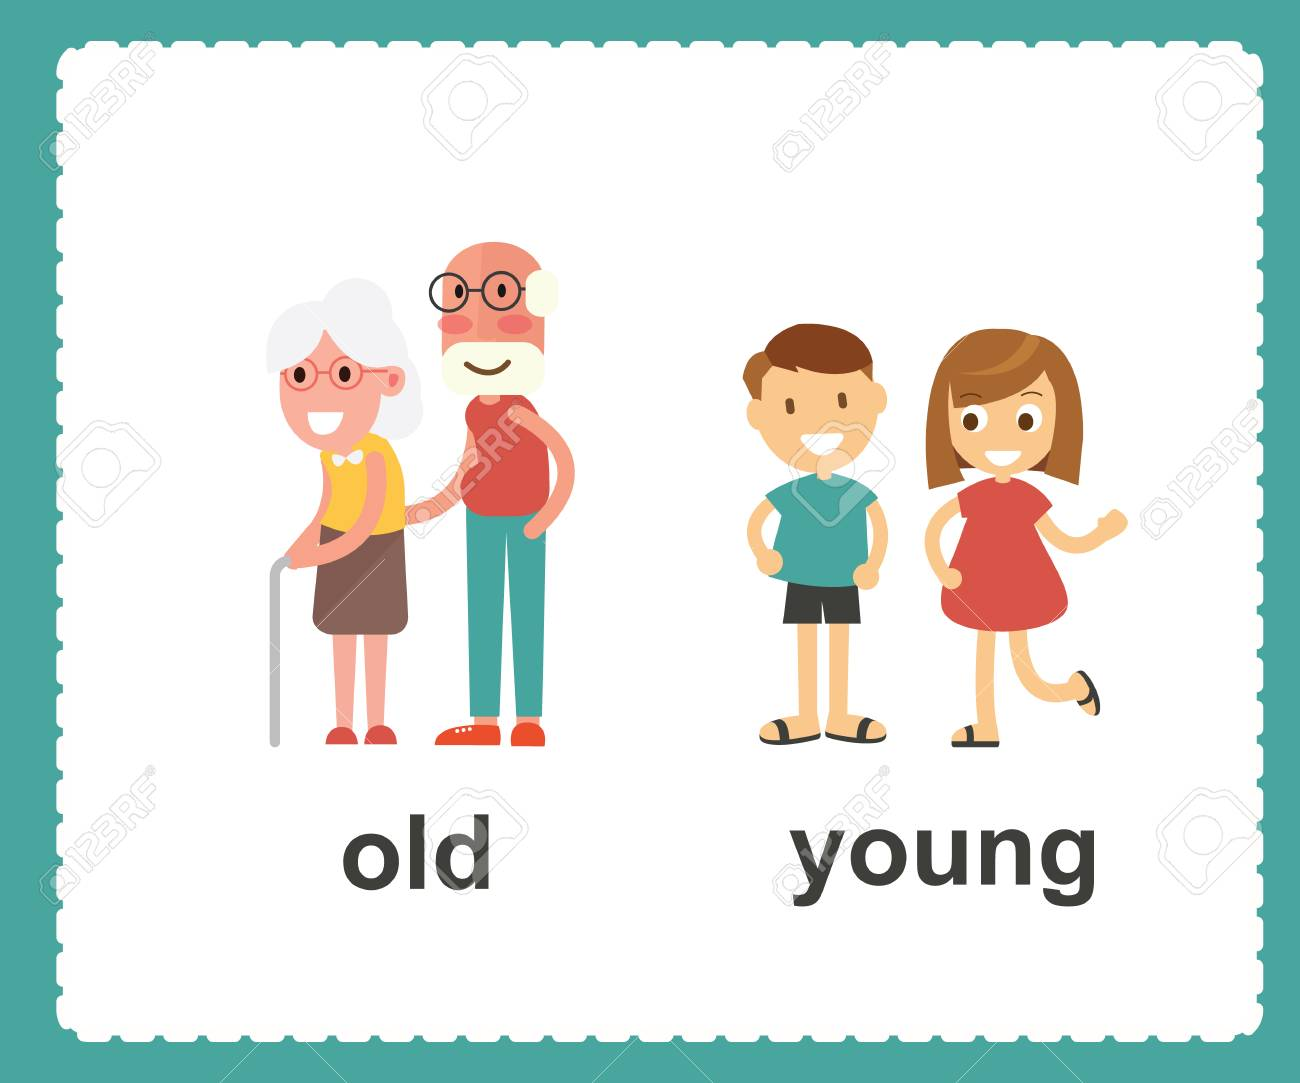 hight resolution of opposite english words showing old and young vector illustration stock vector 100177298